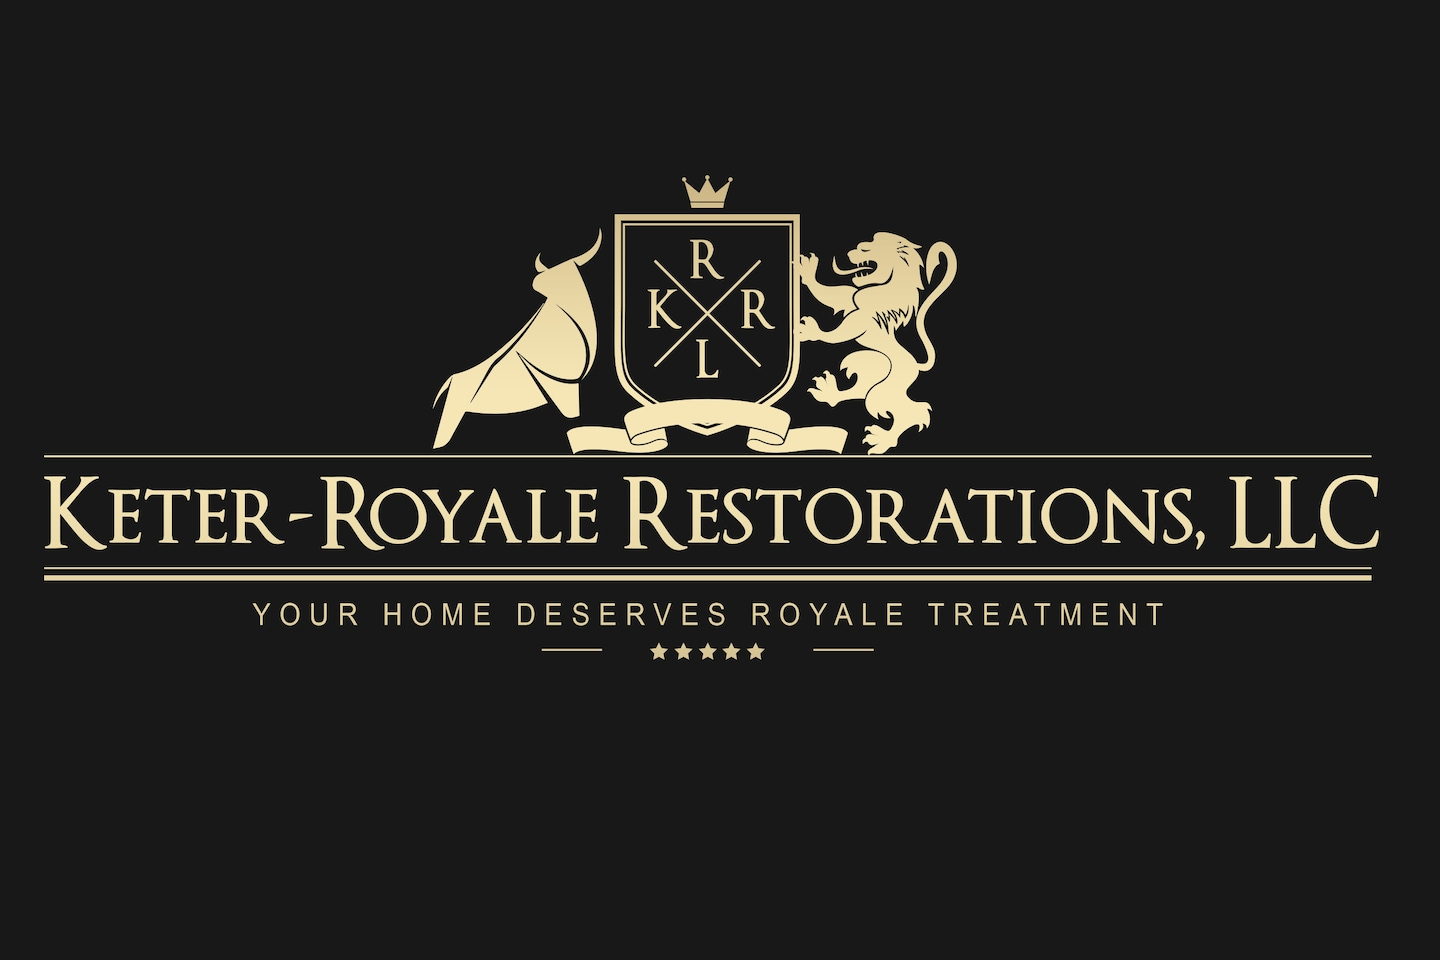 Keter-Royale Restorations, LLC